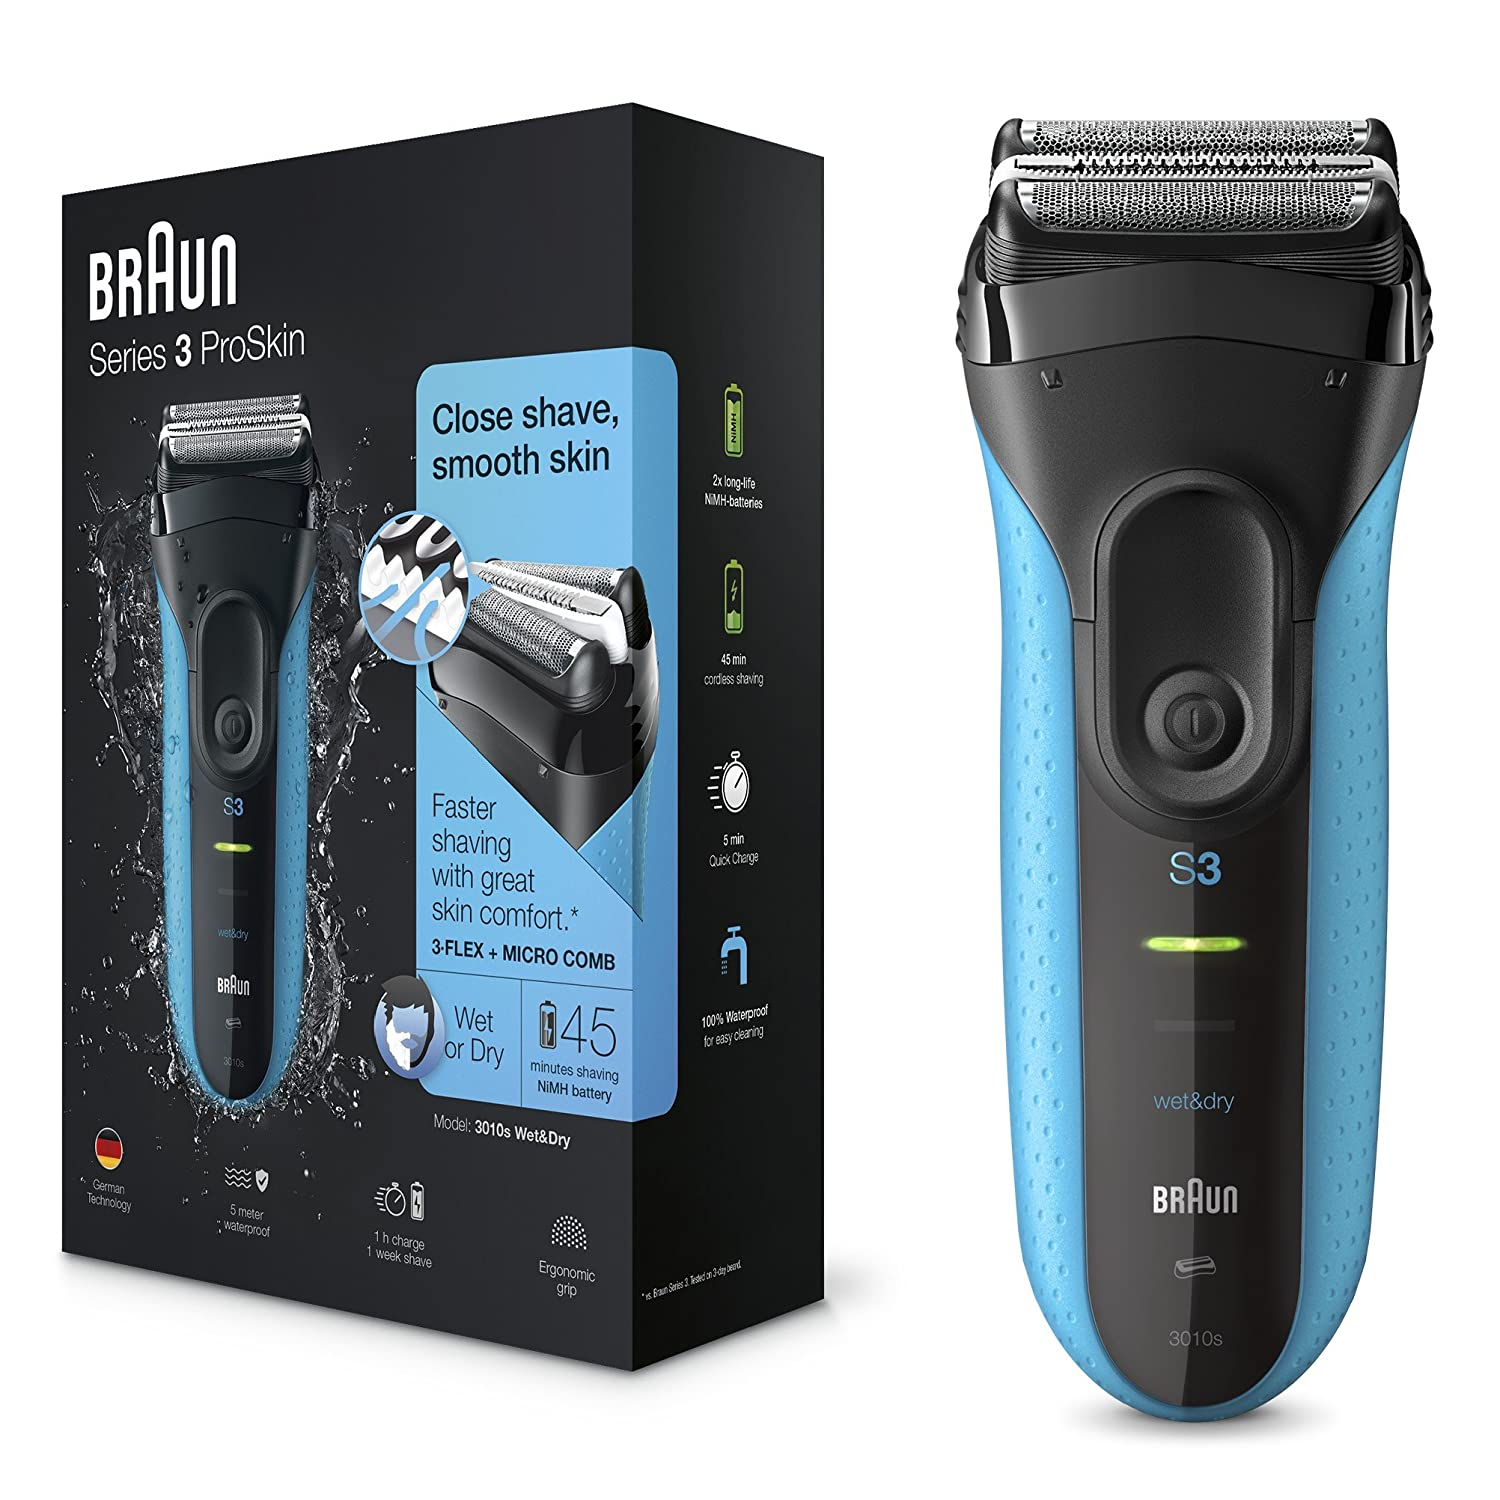 Braun Series 3 ProSkin 3010s Electric Shaver, Black/Blue, Rechargeable and Cordless Wet and Dry Electric Razor for Men Procter & Gamble 81607220